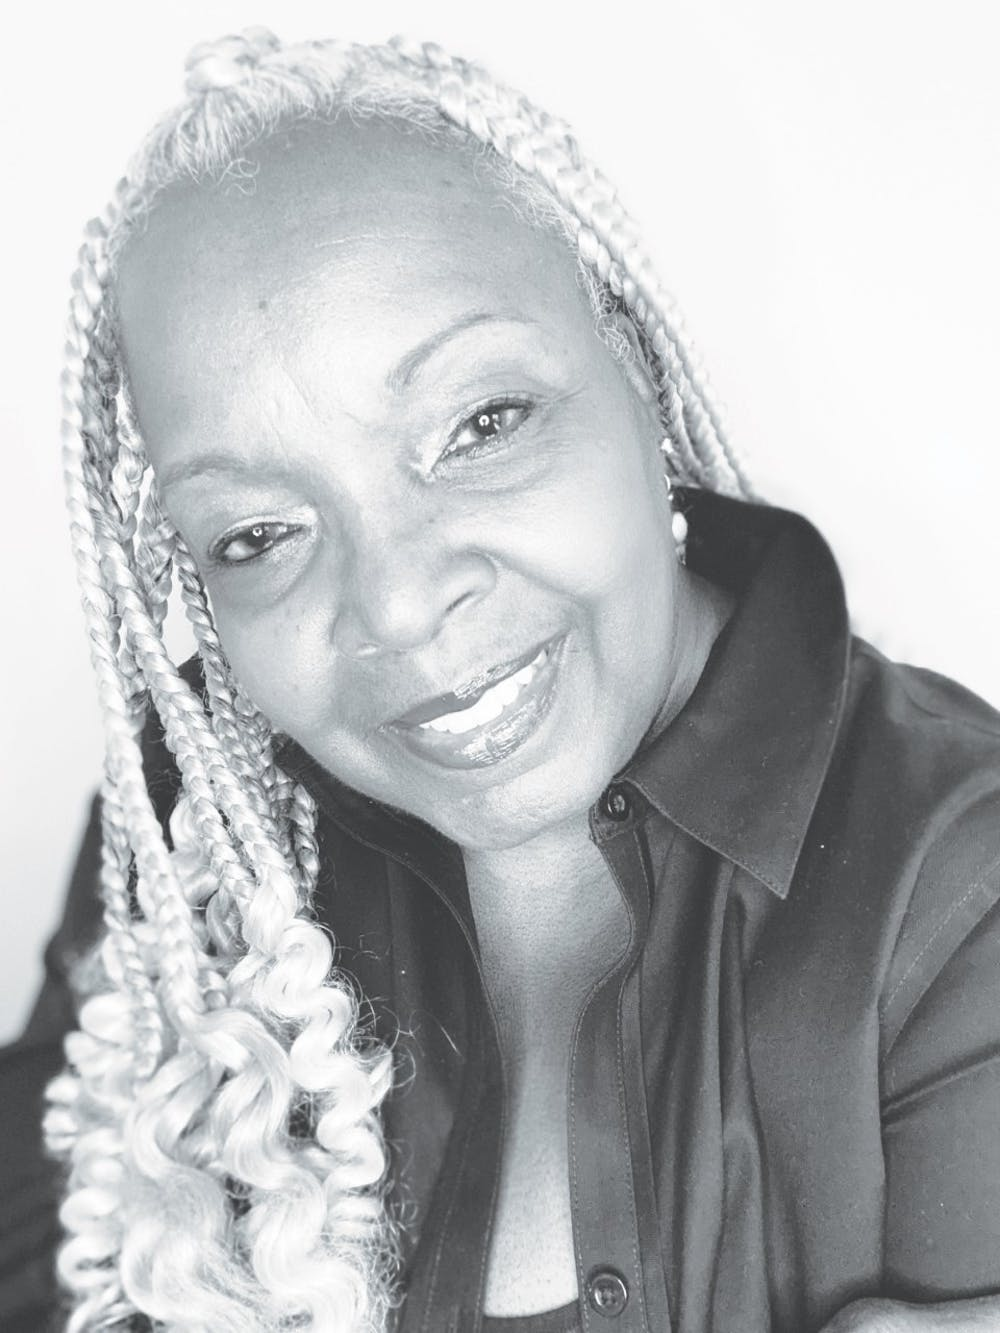 <p>Irma McClaurin is an American anthropologist, poet and leadership consultant. McClaurin is the keynote speaker for the Midwest Regional African American Studies Biennial Conference, which Ball State will host via Zoom March 12-13, 2021. <strong>Emily Rutter, Photo Provided</strong></p>